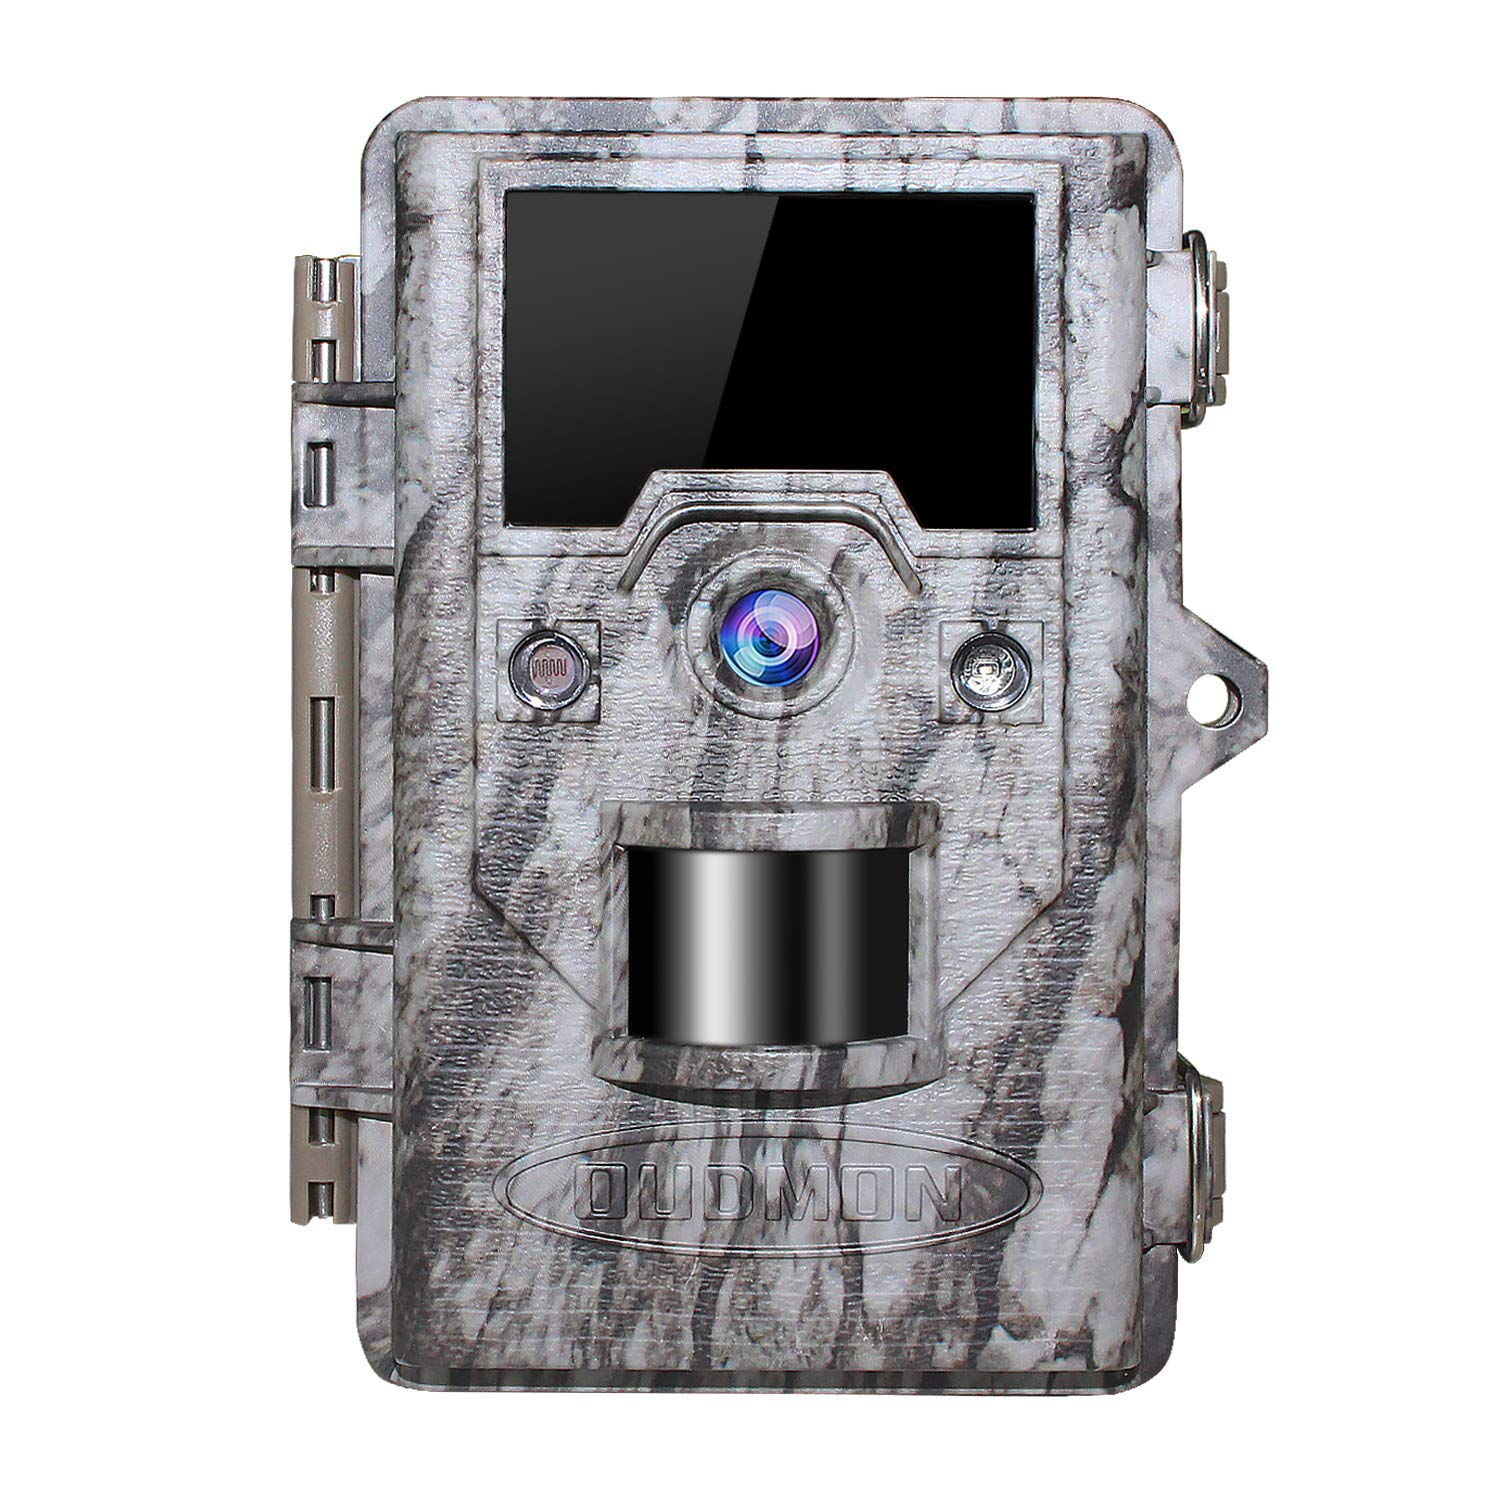 OUDMON Trail Game Camera 16MP 1080p 30fps FHD IP67 Waterproof Wildlife Scouting Hunting Cam with 940nm 48Pcs No Glow IR LEDs Motion Activated Night Vision 2.4 LCD